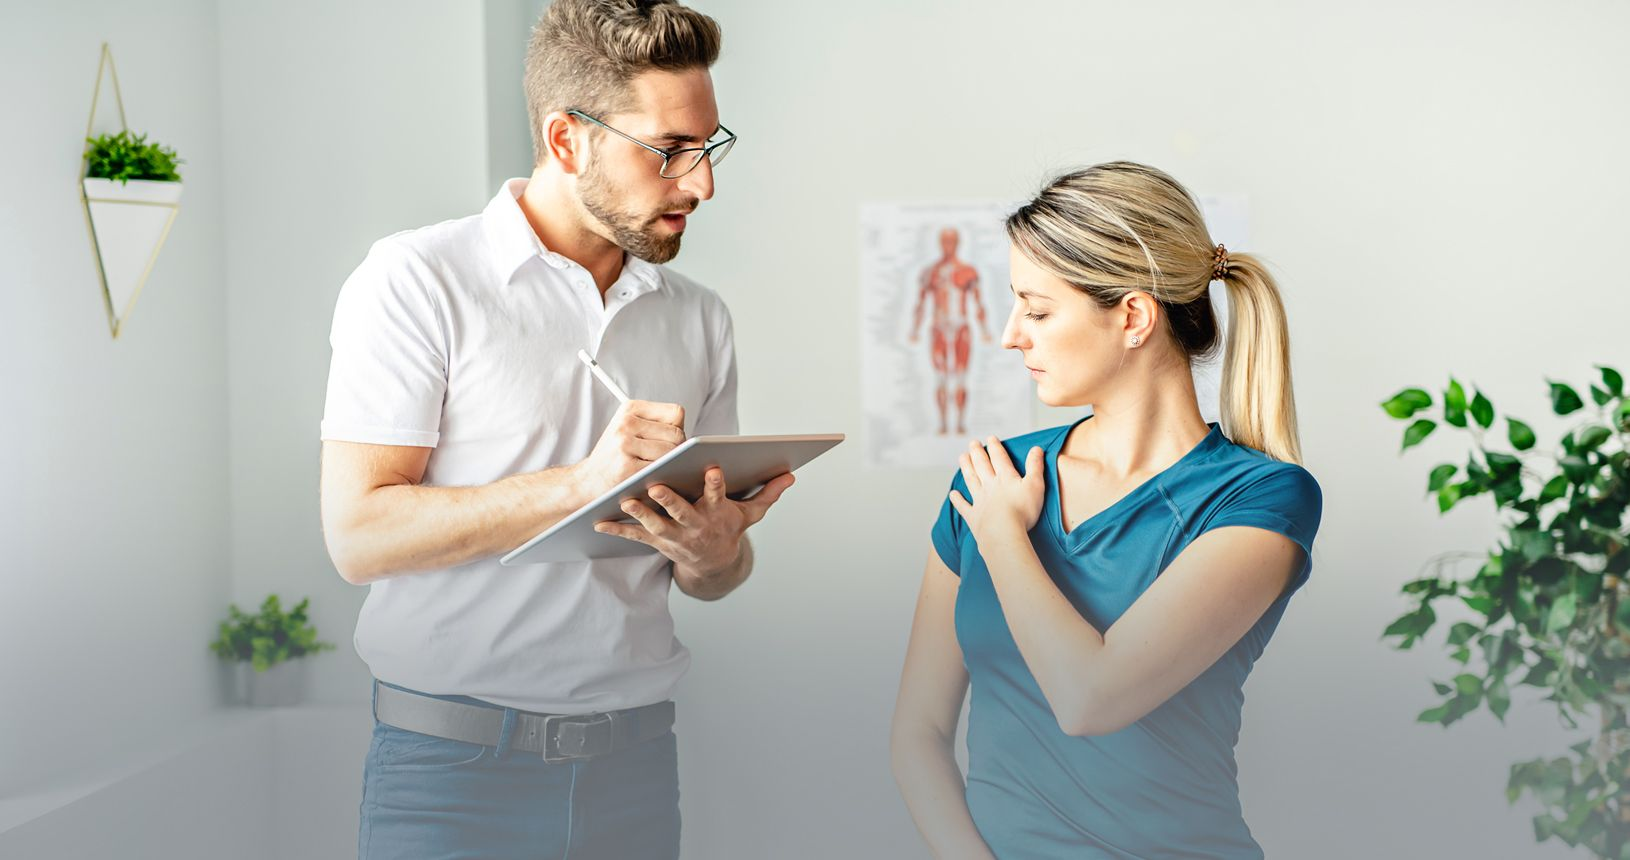 5 Warning Signs You Need a New Physical Therapist